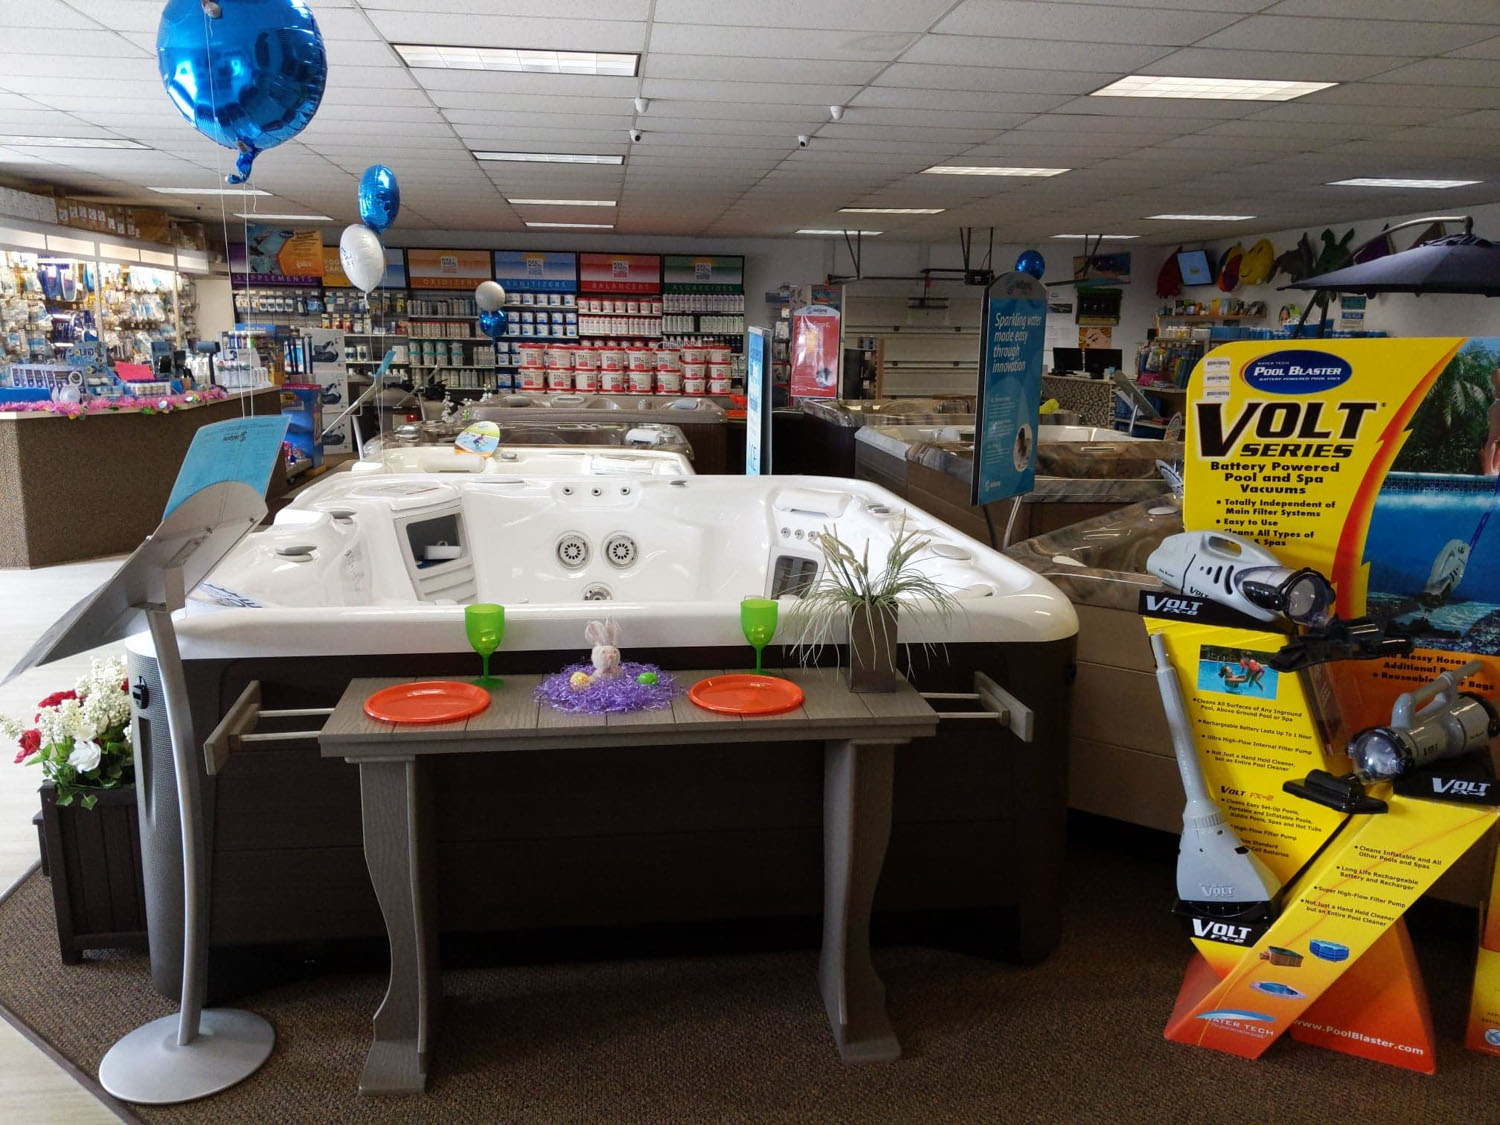 Pool and spa vacuums displayed in the hot tub section of the Bloomsburg showroom